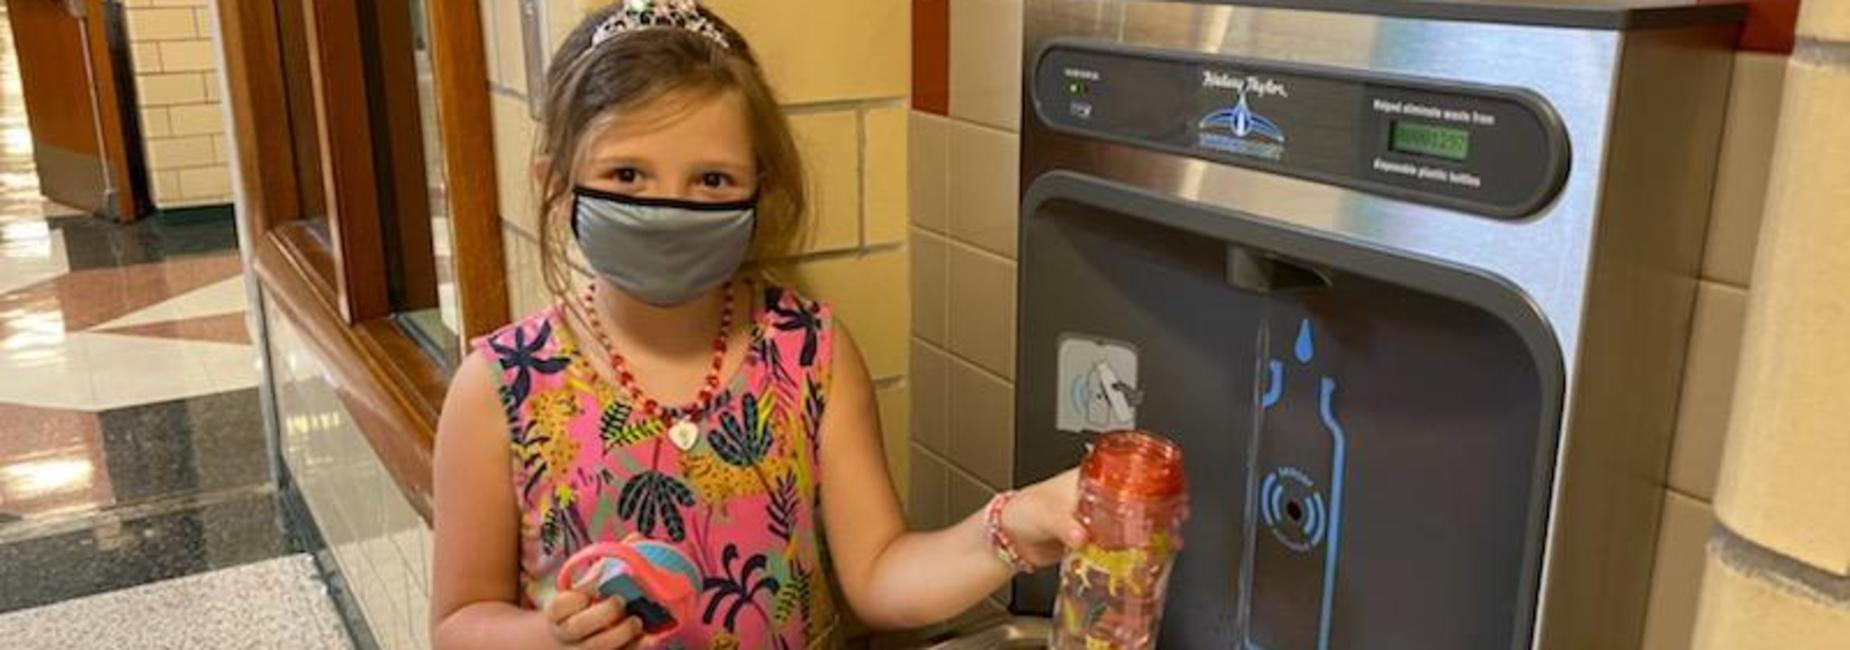 image of student filling water bottle at new water filling station